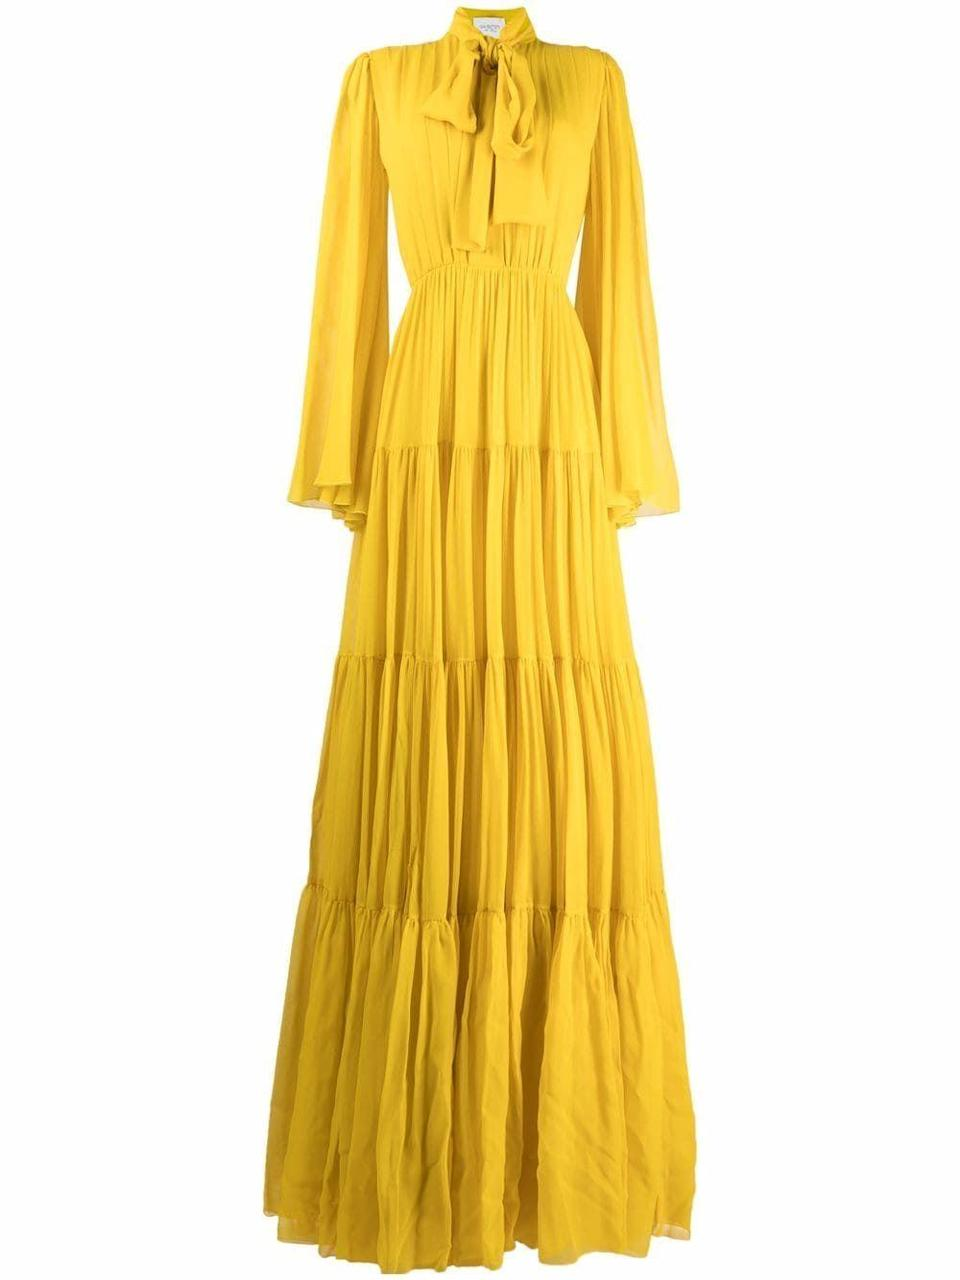 """<p><strong>Giambattista Valli</strong></p><p>farfetch.com</p><p><strong>$4808.00</strong></p><p><a href=""""https://go.redirectingat.com?id=74968X1596630&url=https%3A%2F%2Fwww.farfetch.com%2Fshopping%2Fwomen%2Fgiambattista-valli-pussy-bow-silk-gown-item-16807258.aspx&sref=https%3A%2F%2Fwww.harpersbazaar.com%2Fwedding%2Fbridal-fashion%2Fg36750122%2Fbest-mother-of-the-groom-dresses%2F"""" rel=""""nofollow noopener"""" target=""""_blank"""" data-ylk=""""slk:SHOP NOW"""" class=""""link rapid-noclick-resp"""">SHOP NOW</a></p><p>Mothers of the groom often limit themselves to neutrals like navy, black and metallics. If your mom is one to sport a bold hue, lean into her penchant for pops of color with a tone that best suits her complexion, your bridal party, and the setting. </p>"""